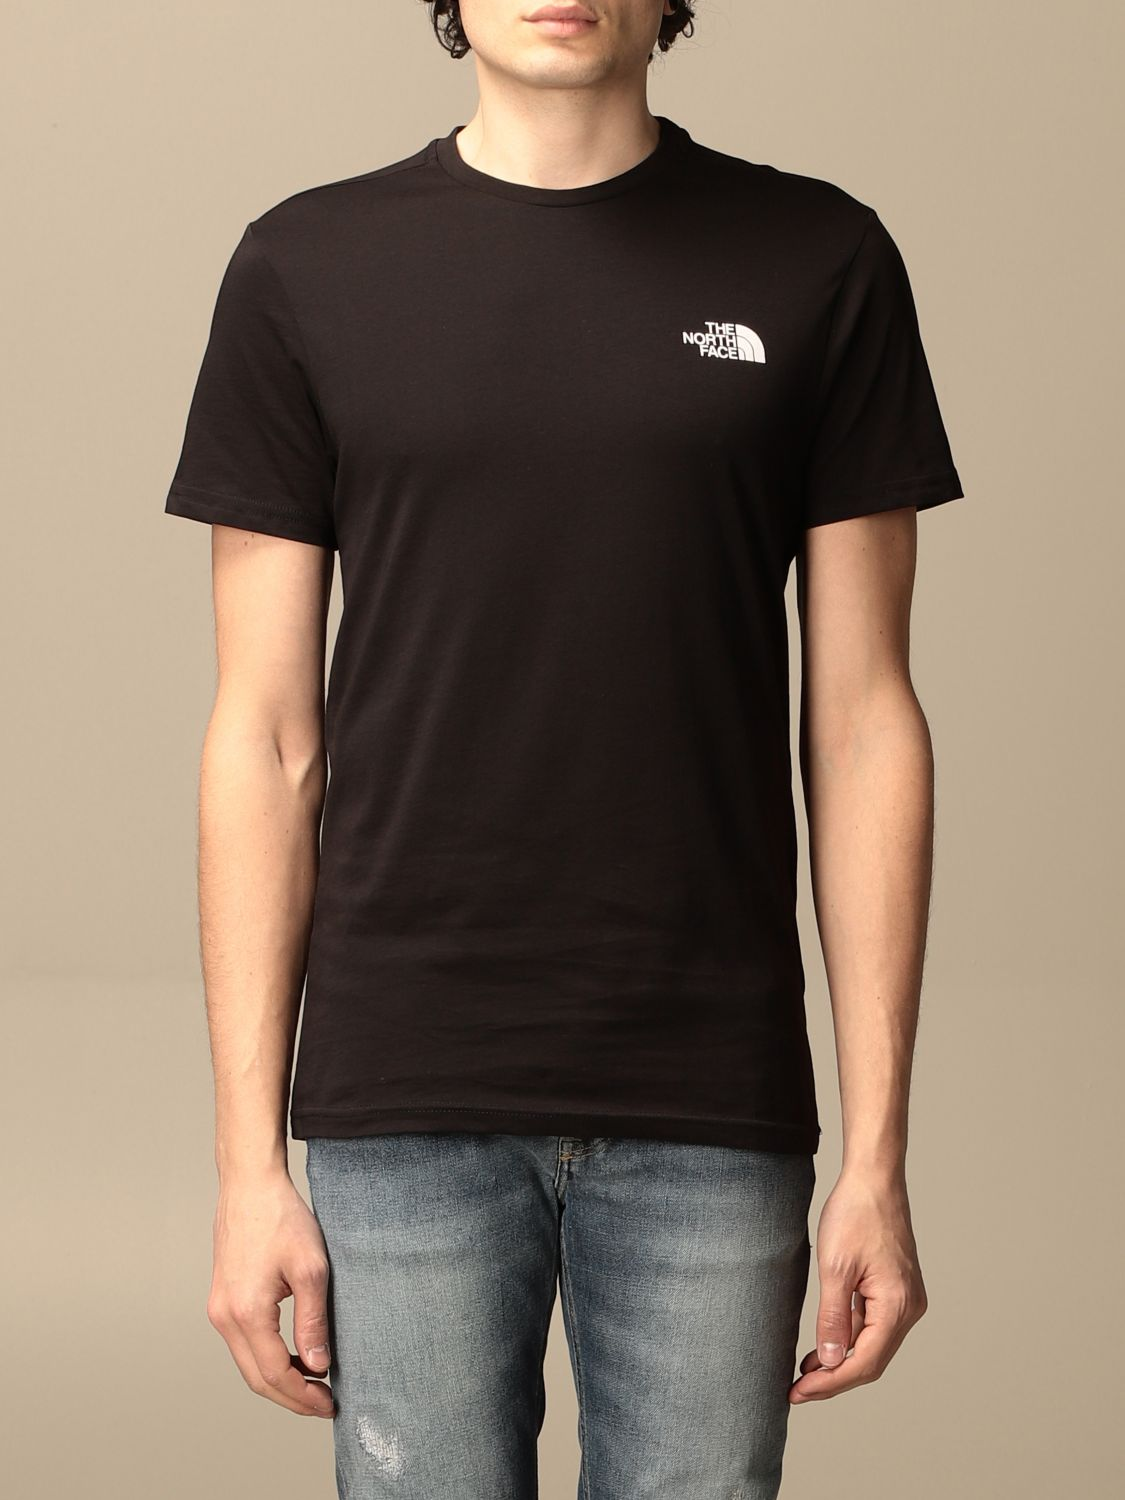 T-shirt The North Face: T-shirt men The North Face black 1